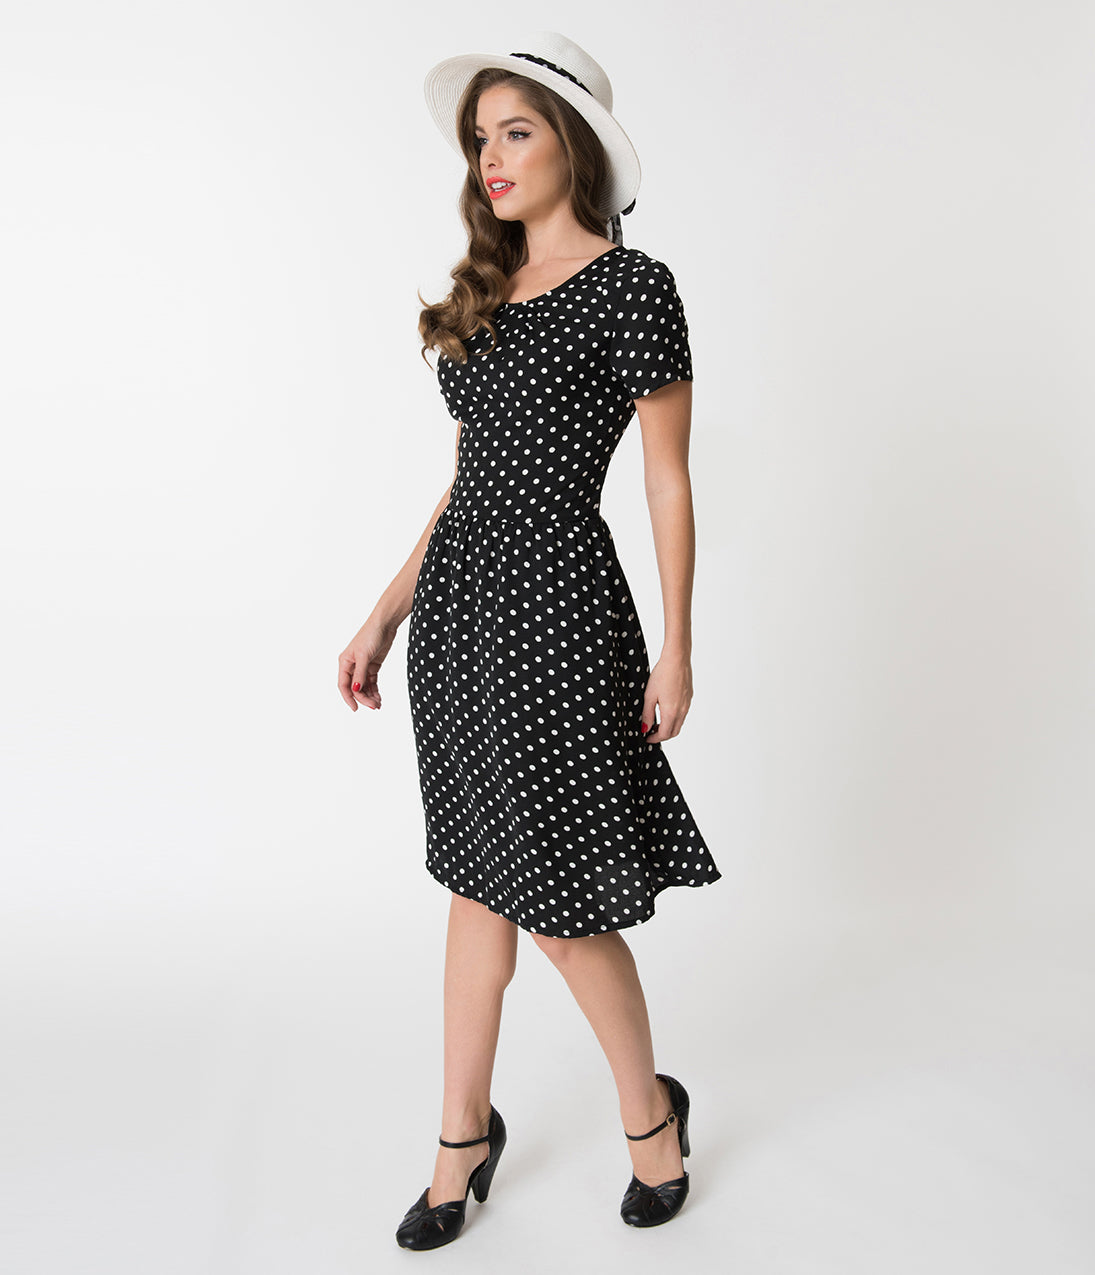 Vintage Polka Dot Dresses – 50s Spotty and Ditsy Prints 1950S Style Black  White Polka Dot Short Sleeve Elizabeth Swing Dress $58.00 AT vintagedancer.com